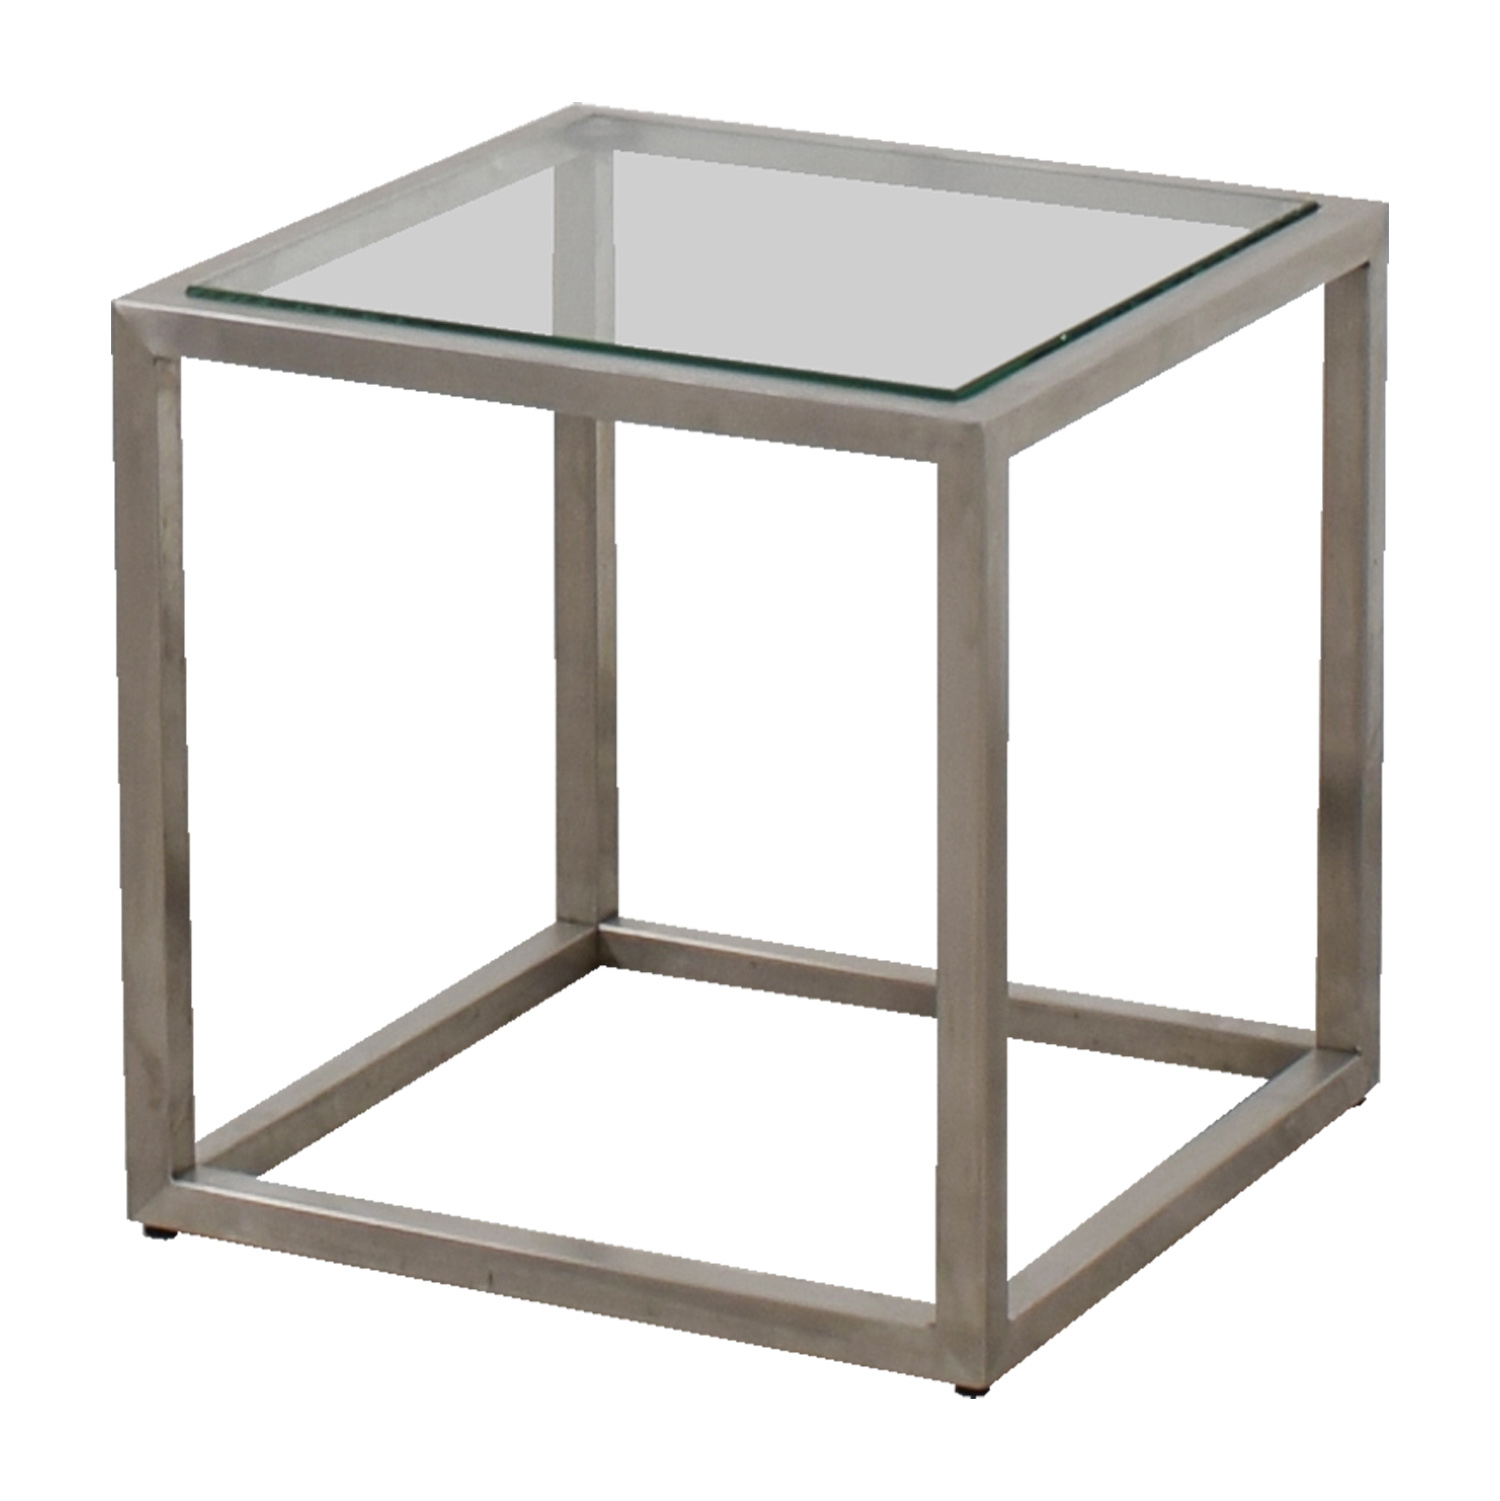 87% off - ethan allen ethan allen metal and glass cube coffee table Cube Coffee Table